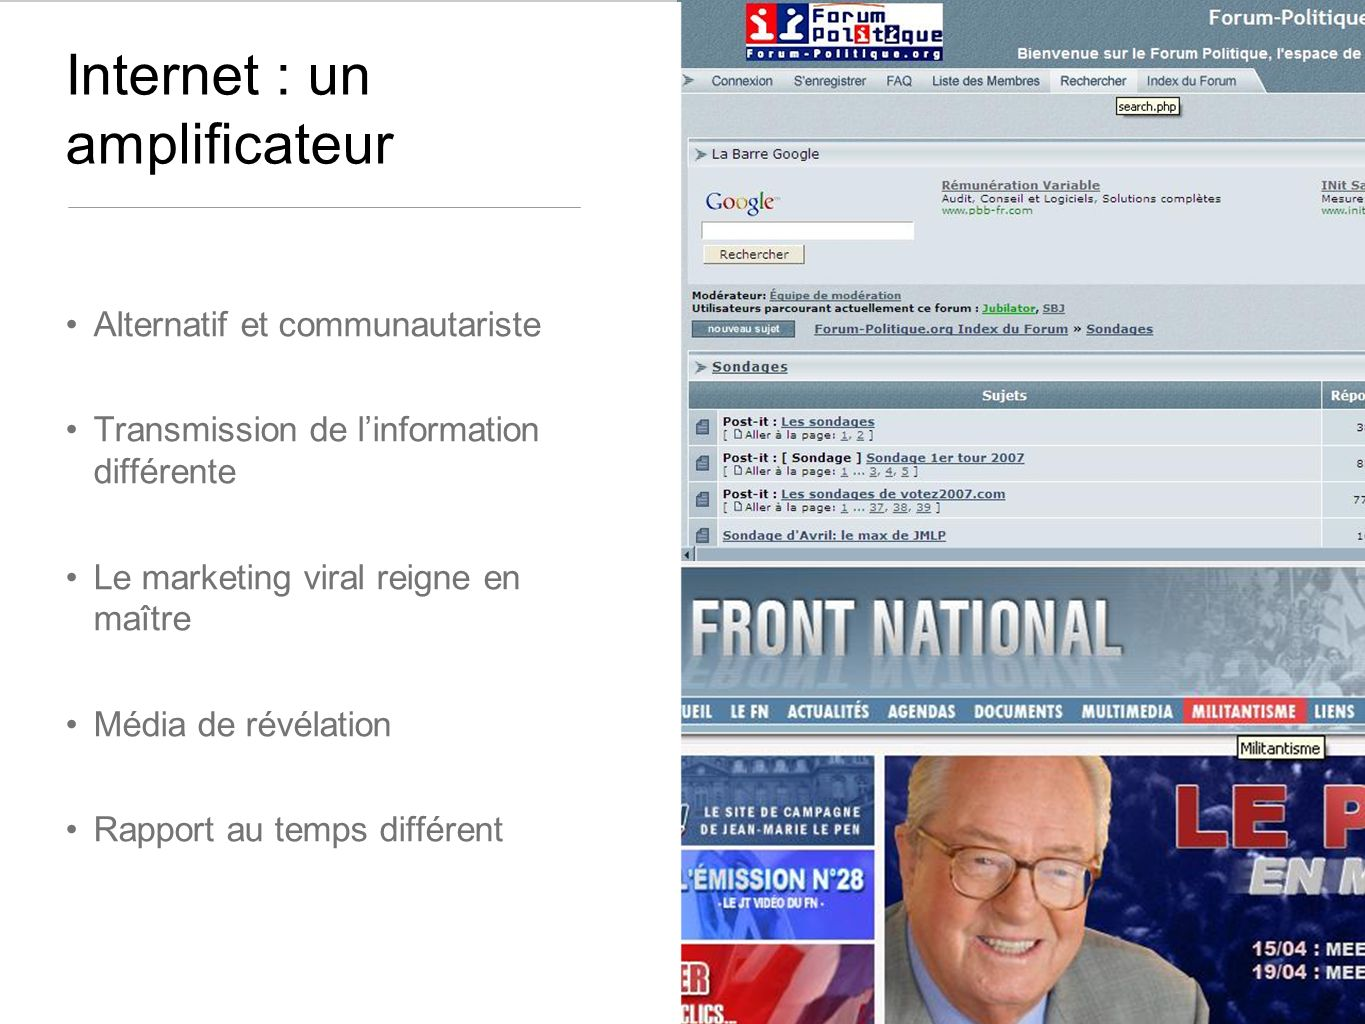 Internet : un amplificateur